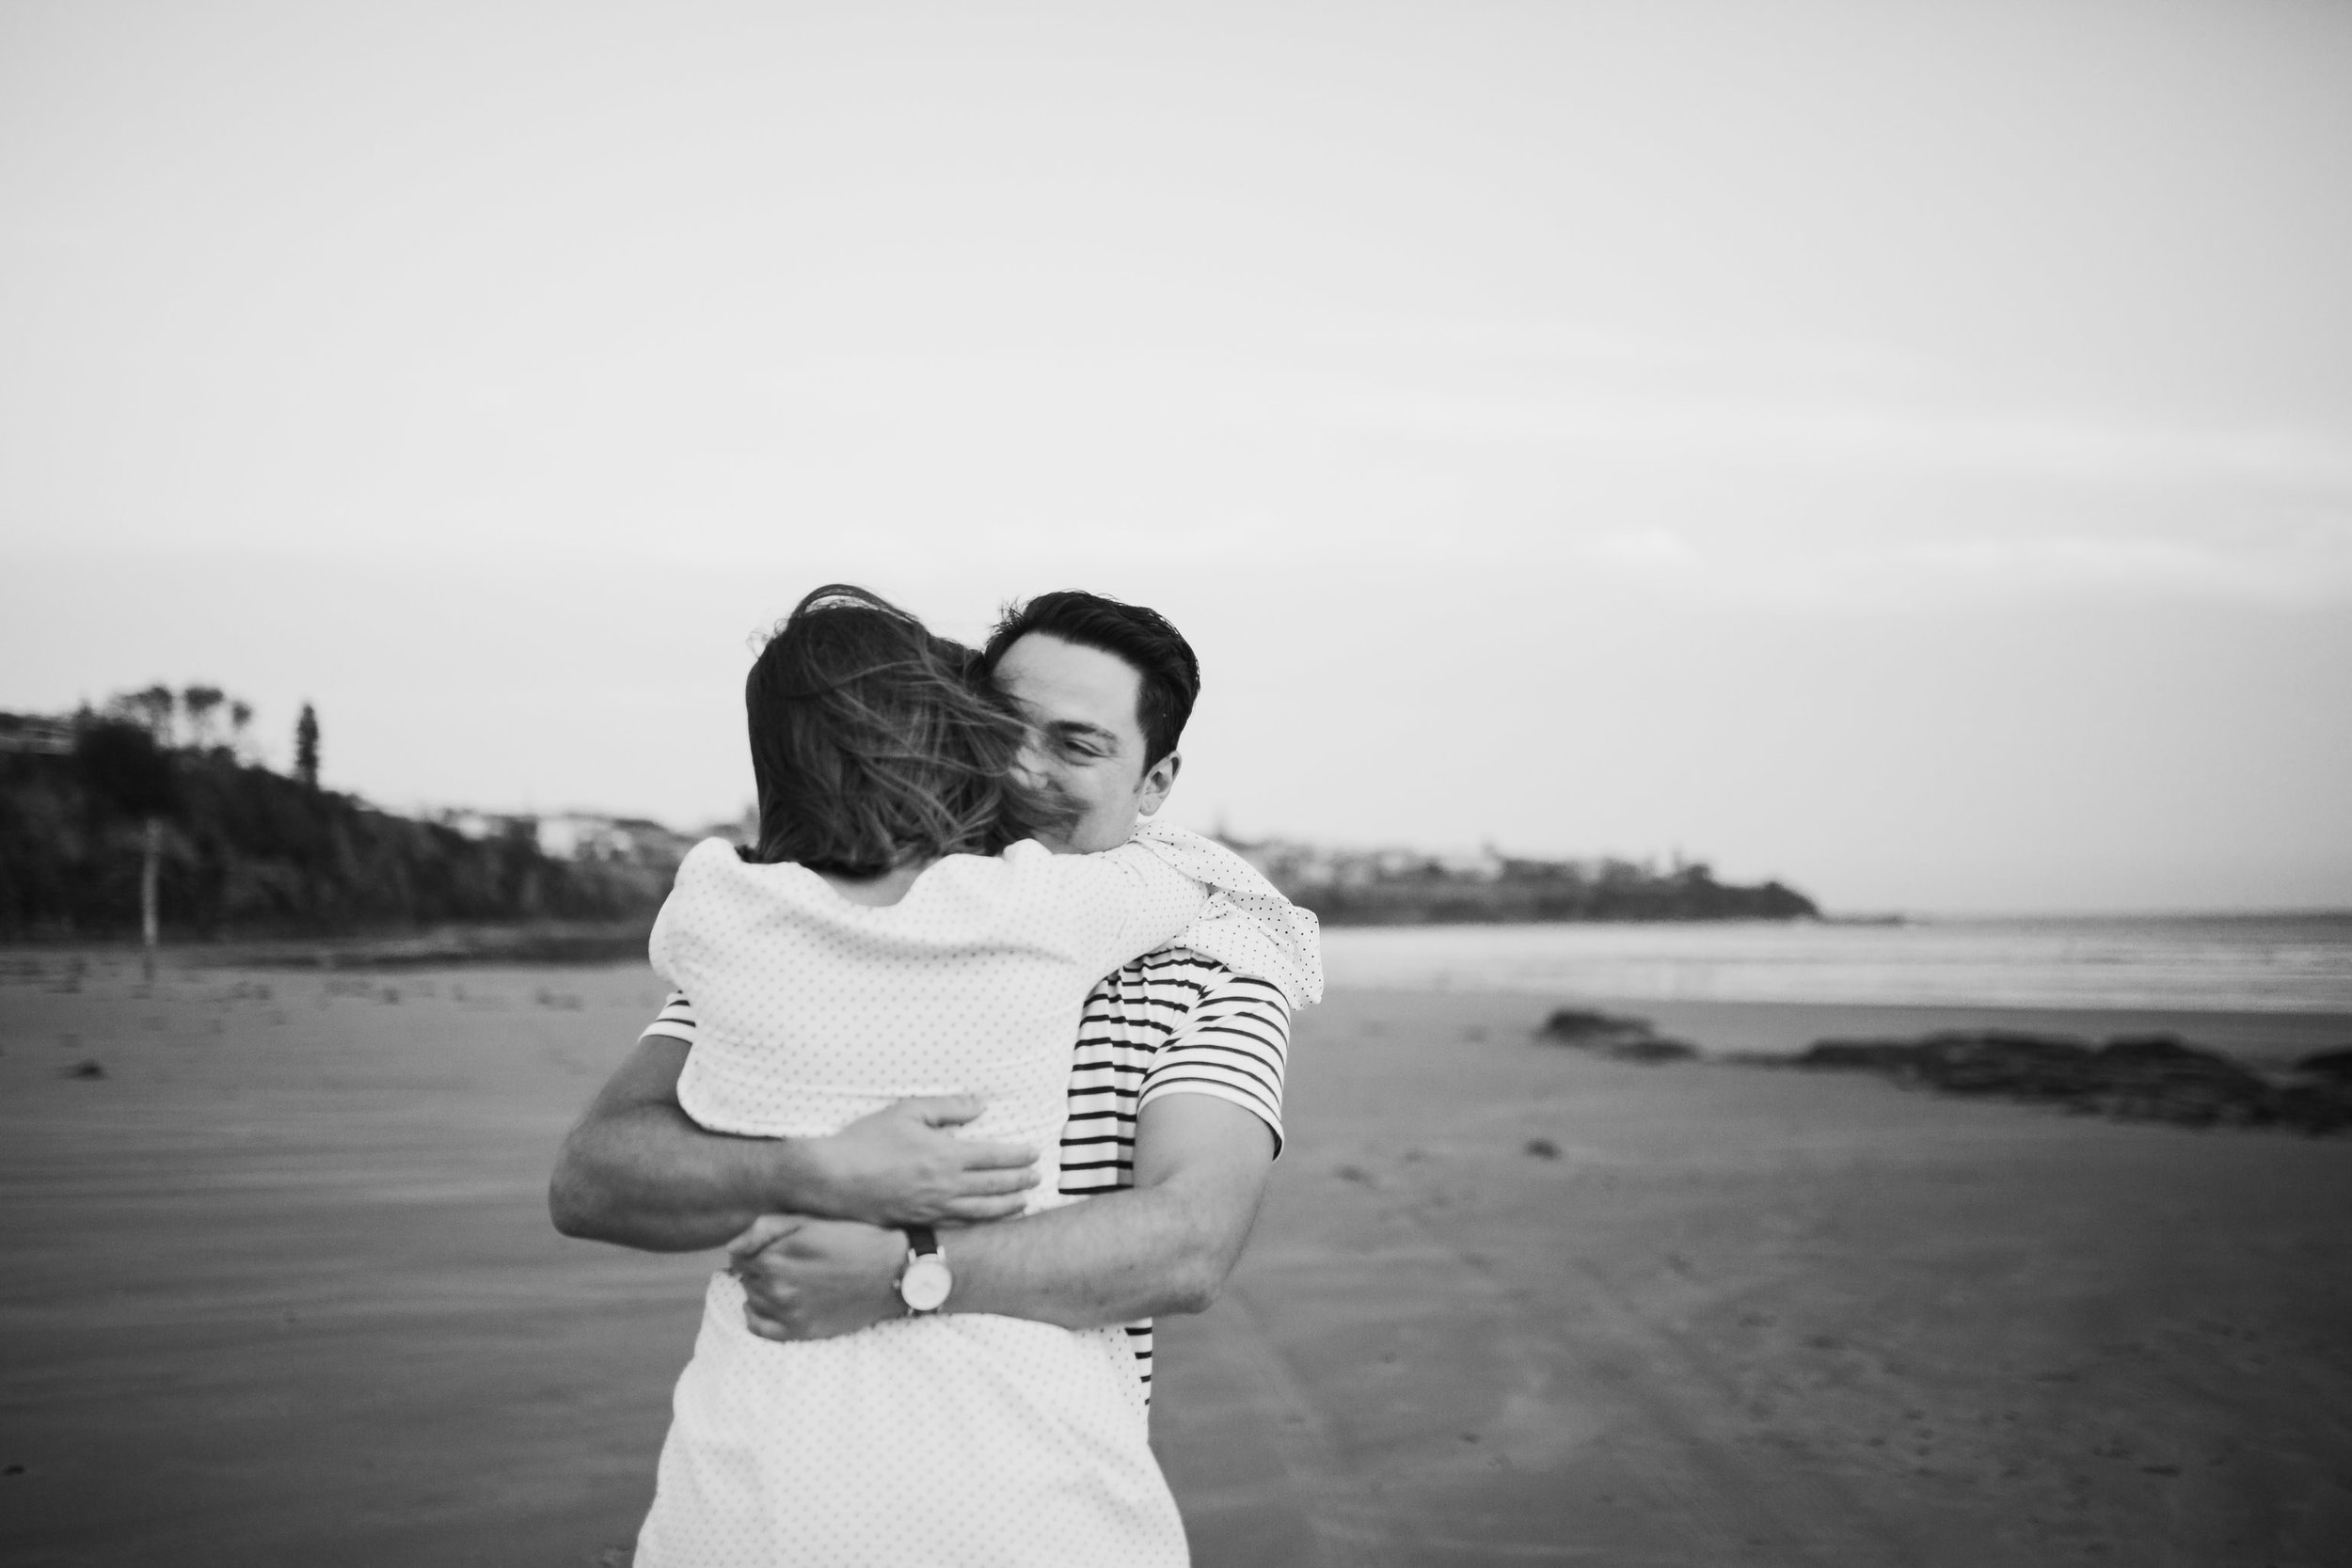 Kristen+Daniel+Engagement+Session+Portraits+Kiama+Beach-44.jpg